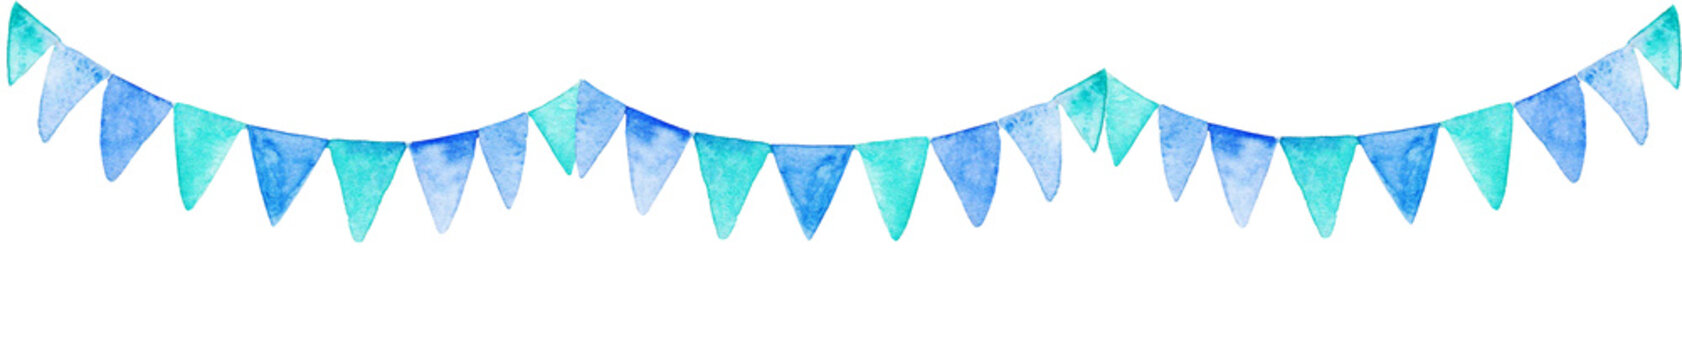 Watercolor blue party flags banner. For design, print or background